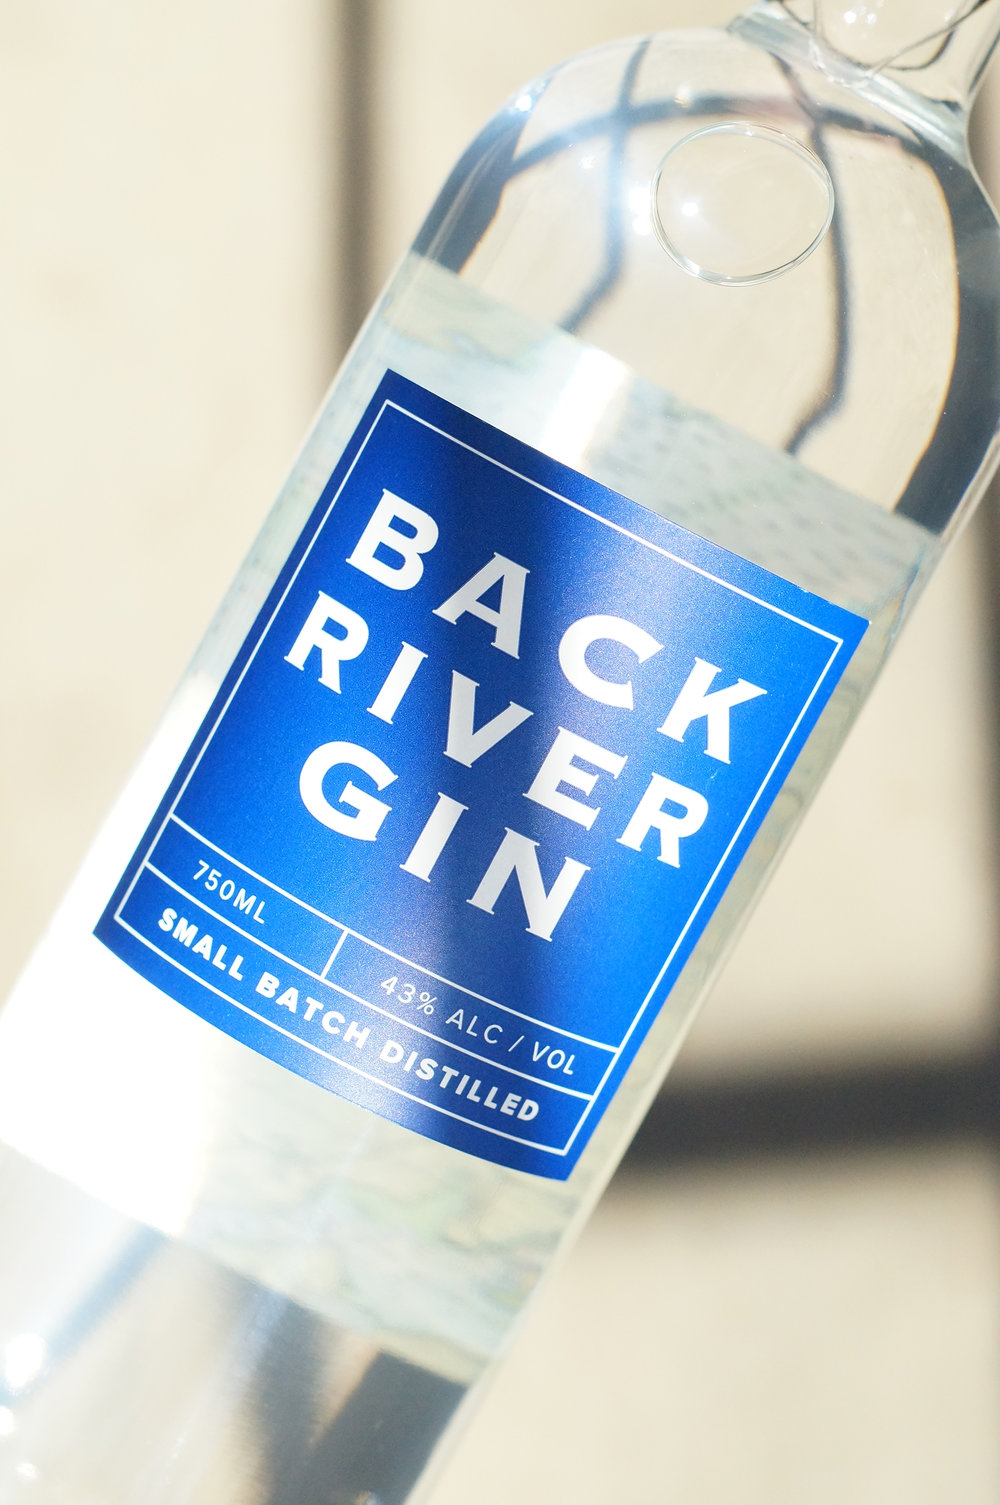 Back River Gin - Gin made in the London tradition with a Maine twist: blueberries.  The combination of organic botanicals, Maine blueberries, and sea air give our gin its refreshing taste. Spirit Journal says, 'The aroma's unlike any other gin in the world, and better than a whole slew of them… Finishes ultra-clean, amazingly tart and acidic, yet eye-poppingly fresh.' Wine Enthusiast calls it 'A creative and sophisticated gin.' Come see us and taste a sample of this award winning spirit.TOP 50 SPIRITS Wine EnthusiastMAINE'S BEST GIN DownEast Magazine 2009SUPERB (95) / Highly RecommendedWine Enthusiast